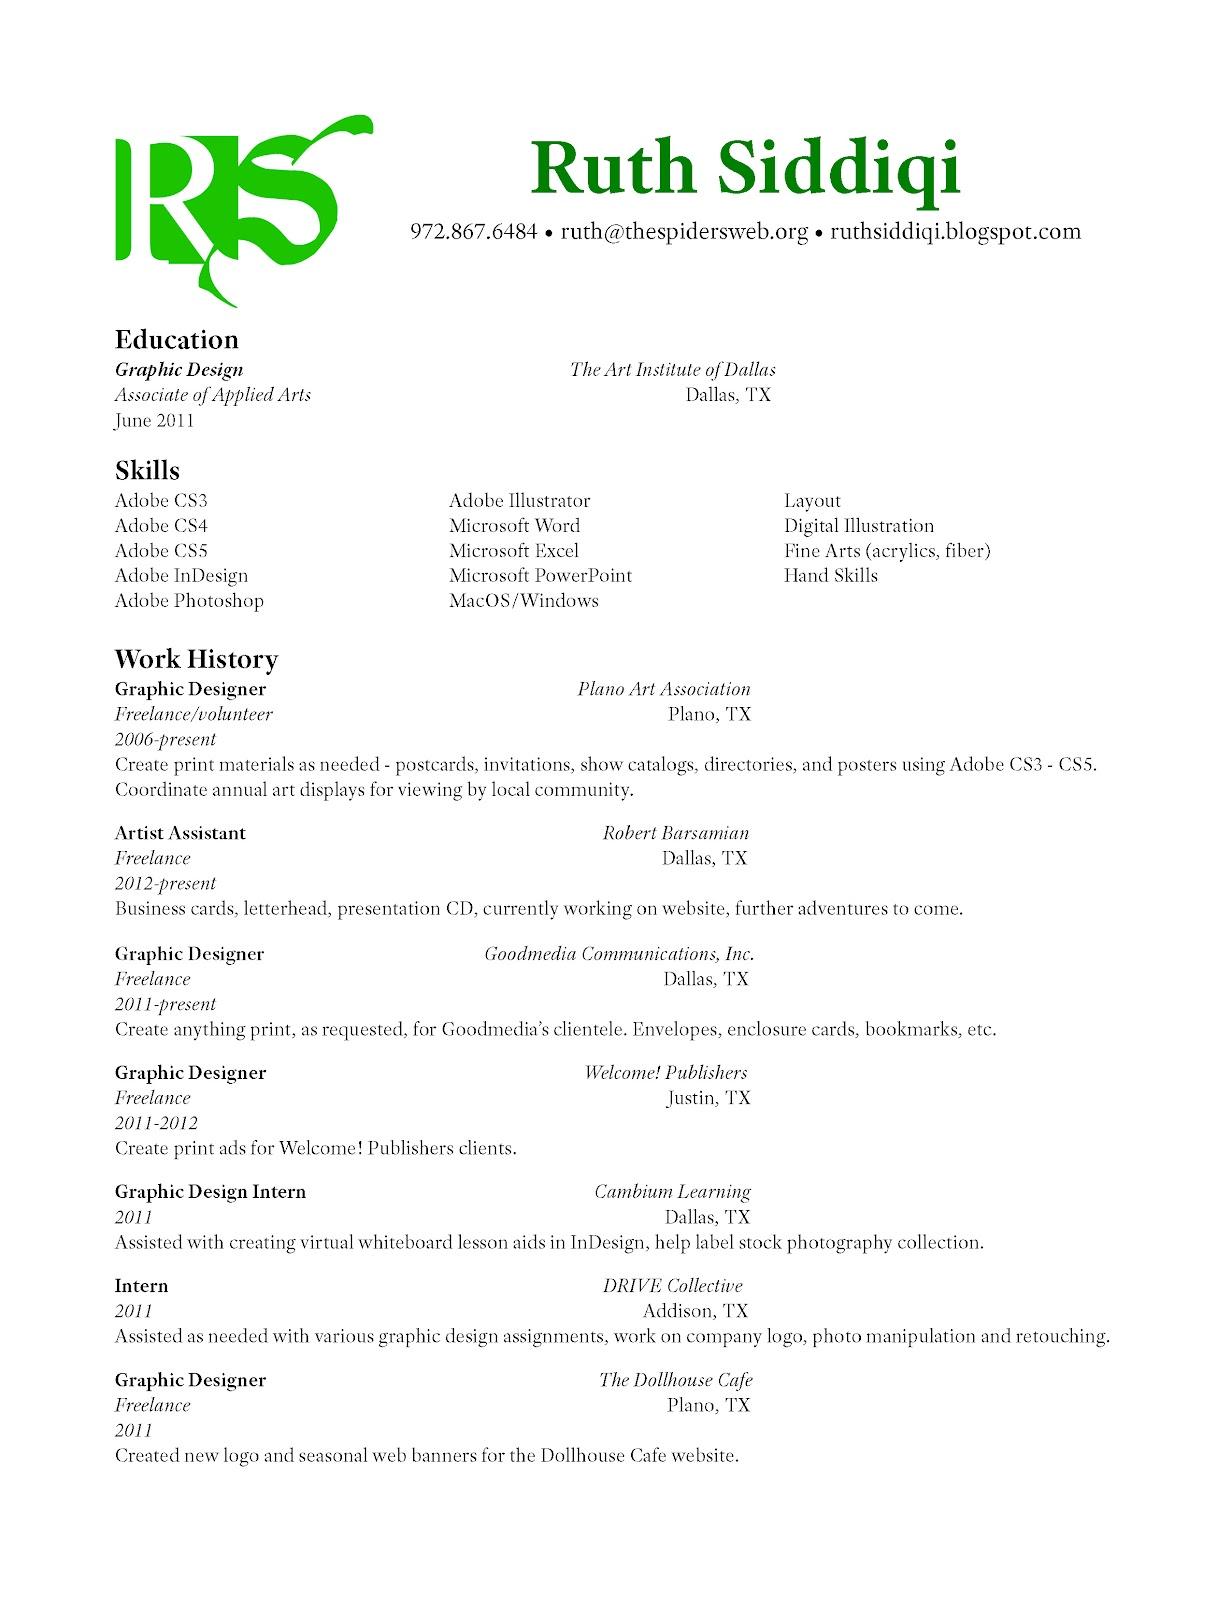 ruth siddiqi graphic design resume - Freelance Graphic Designer Resume